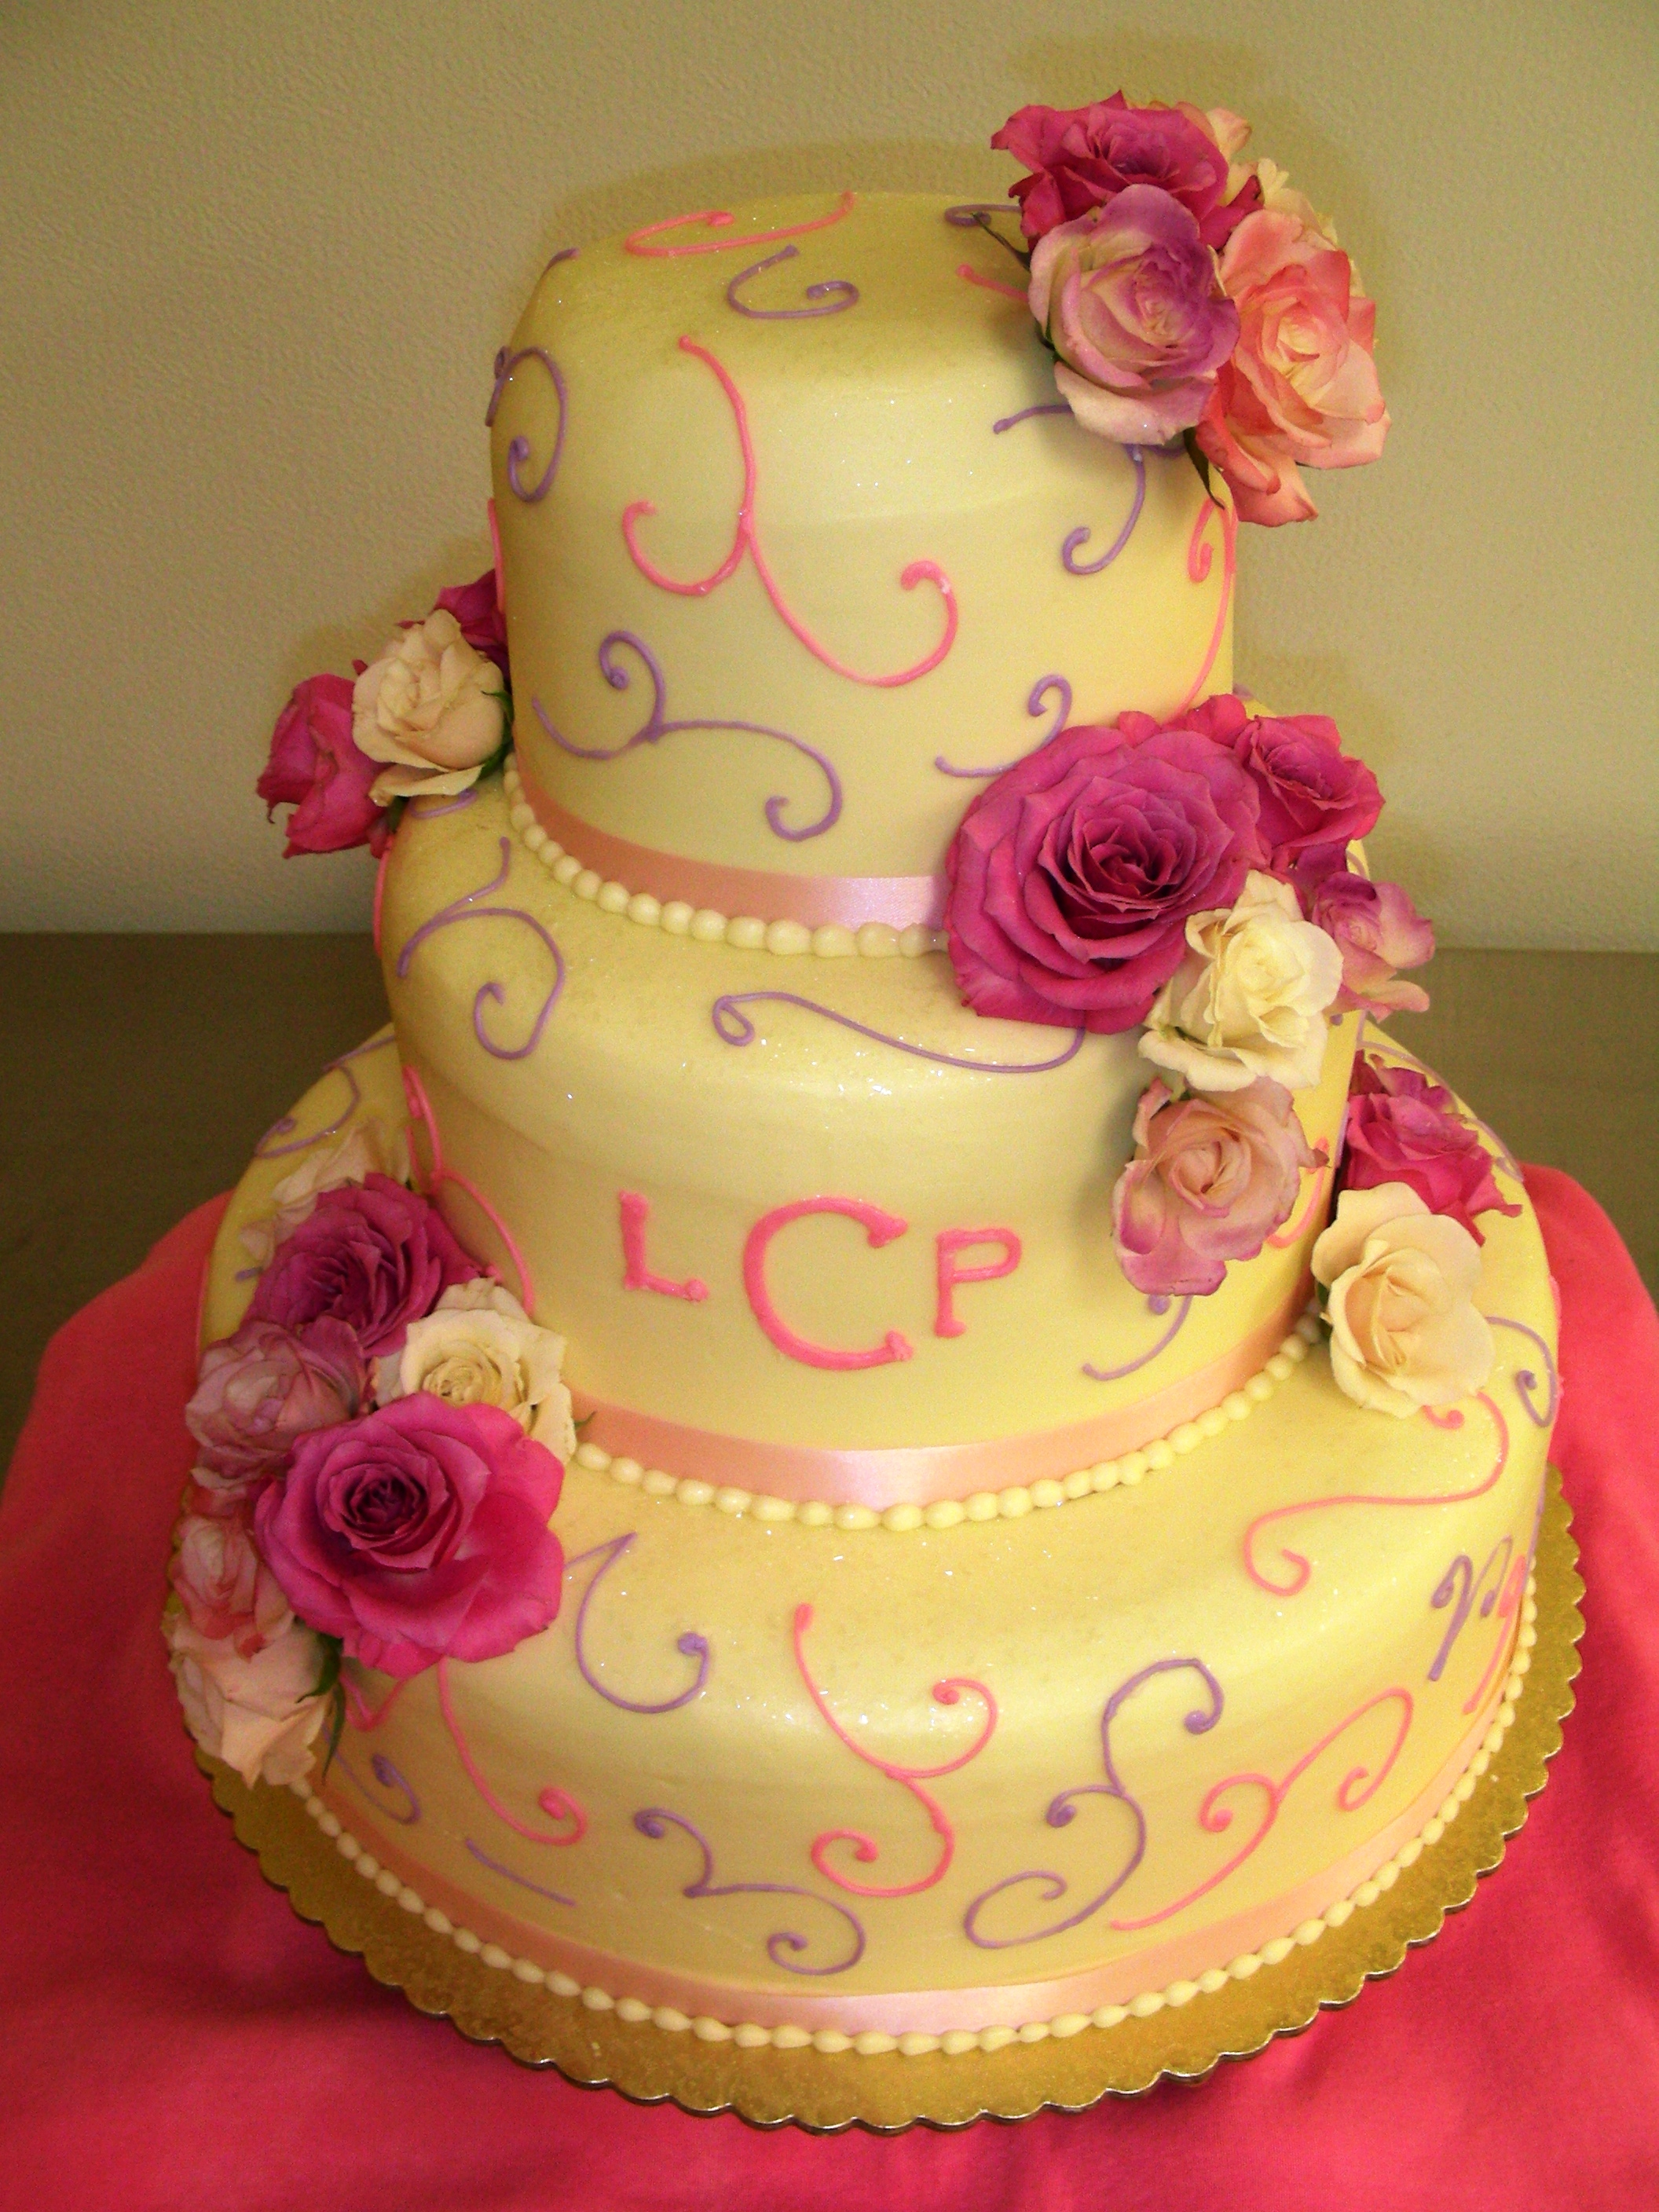 File:Colorful three tiered wedding cake LCP.jpg - Wikimedia Commons